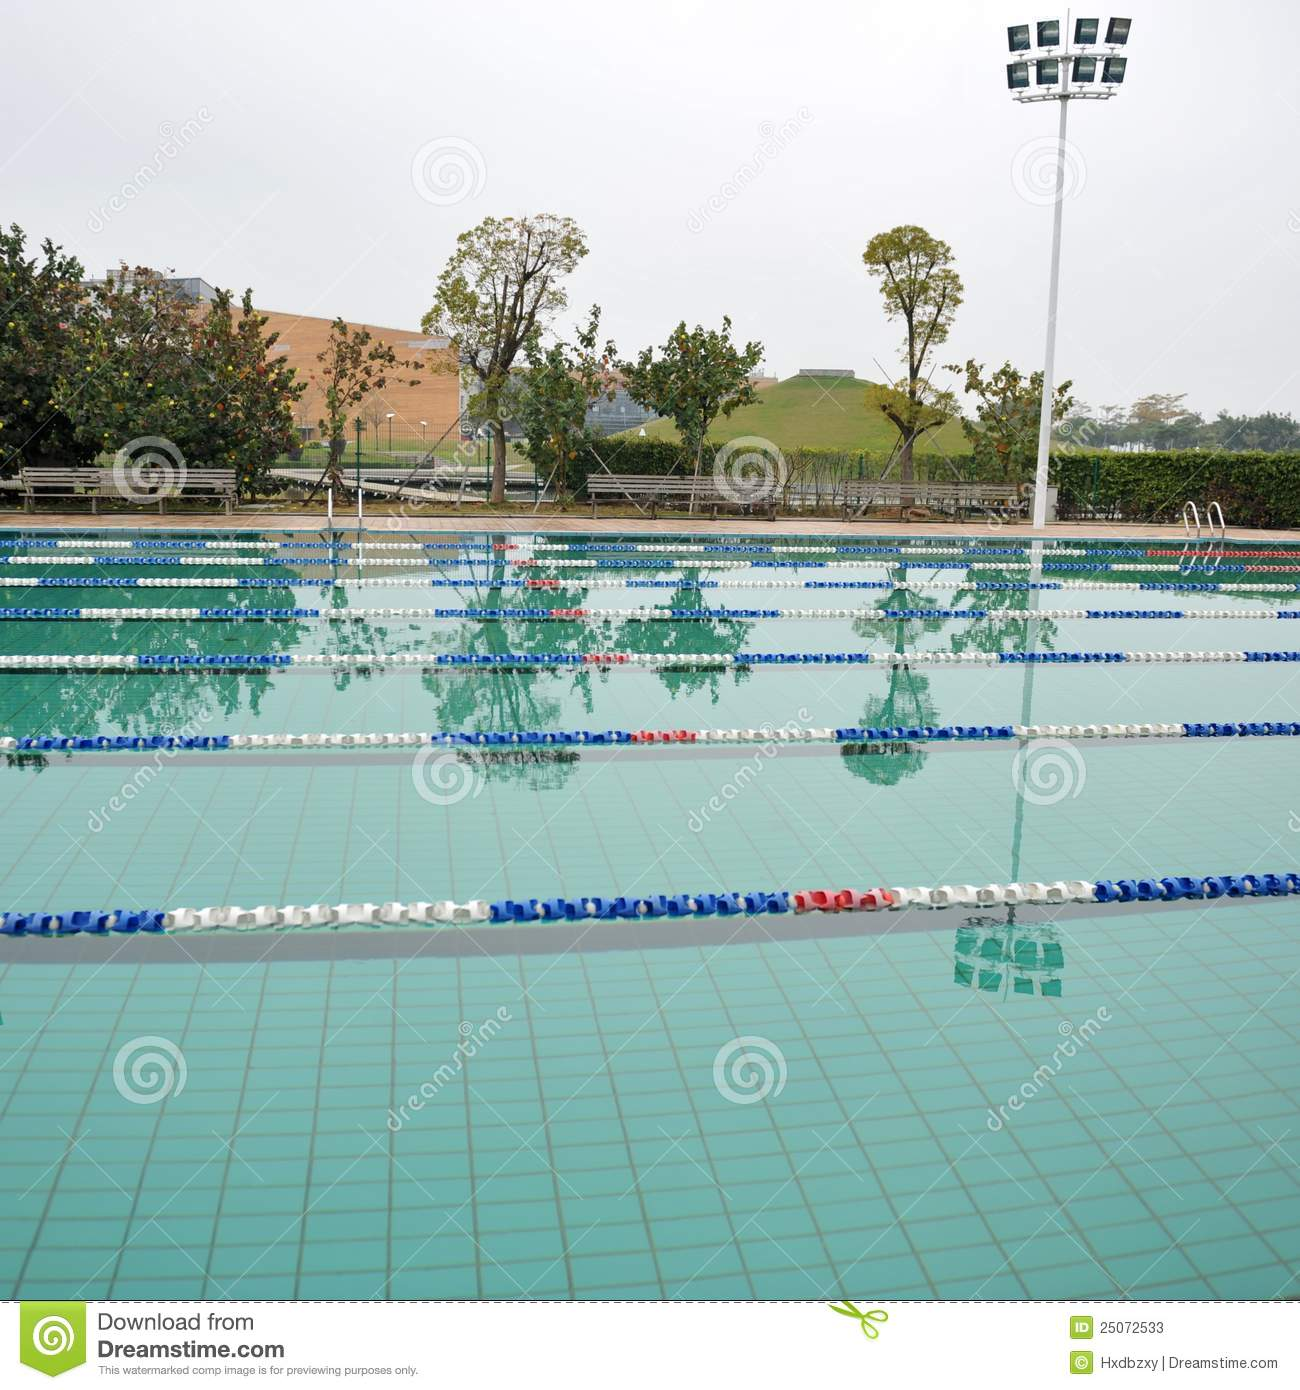 Open air swimming pool stock image image of fresh - An open air swimming pool crossword clue ...